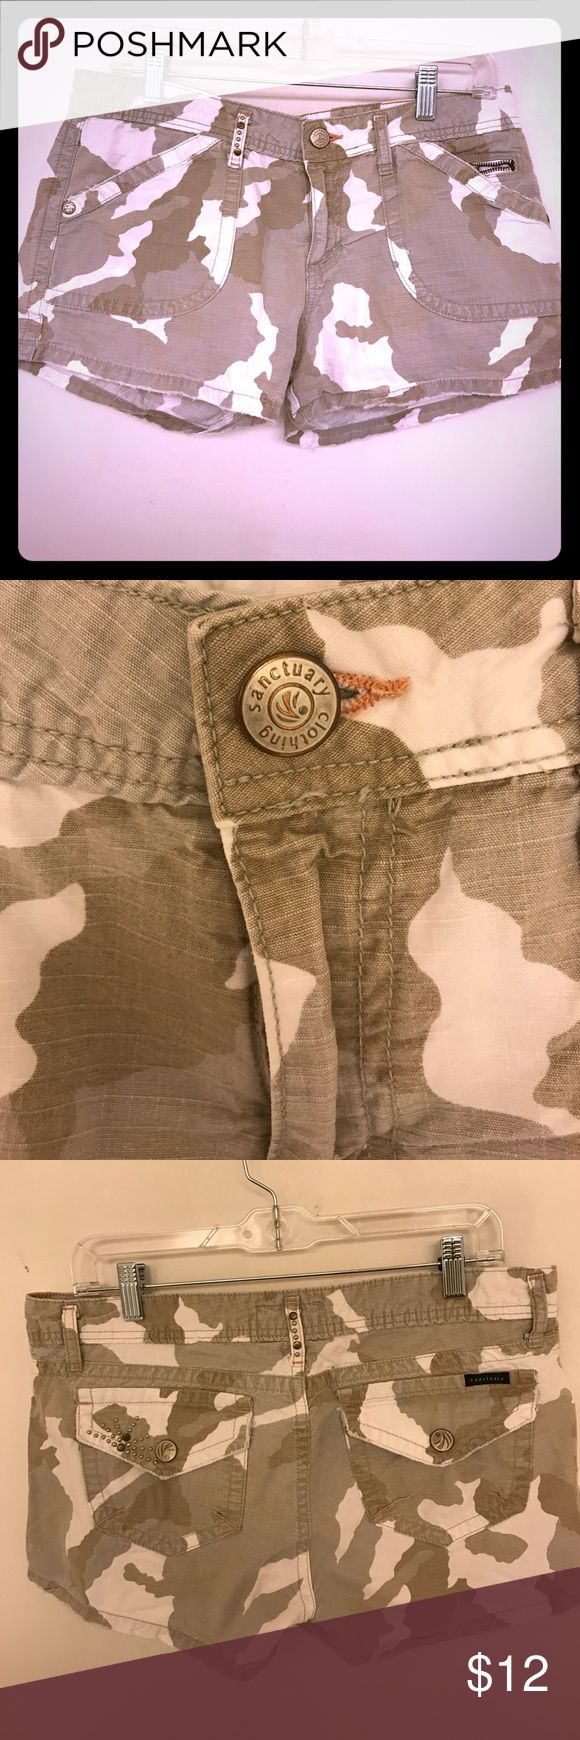 Sanctuary peace Camo/camouflage shorts. Size 29 Sanctuary peace Camo/camouflage shorts. Size 29. Frayed edges but supposed to be that way. Sanctuary Shorts